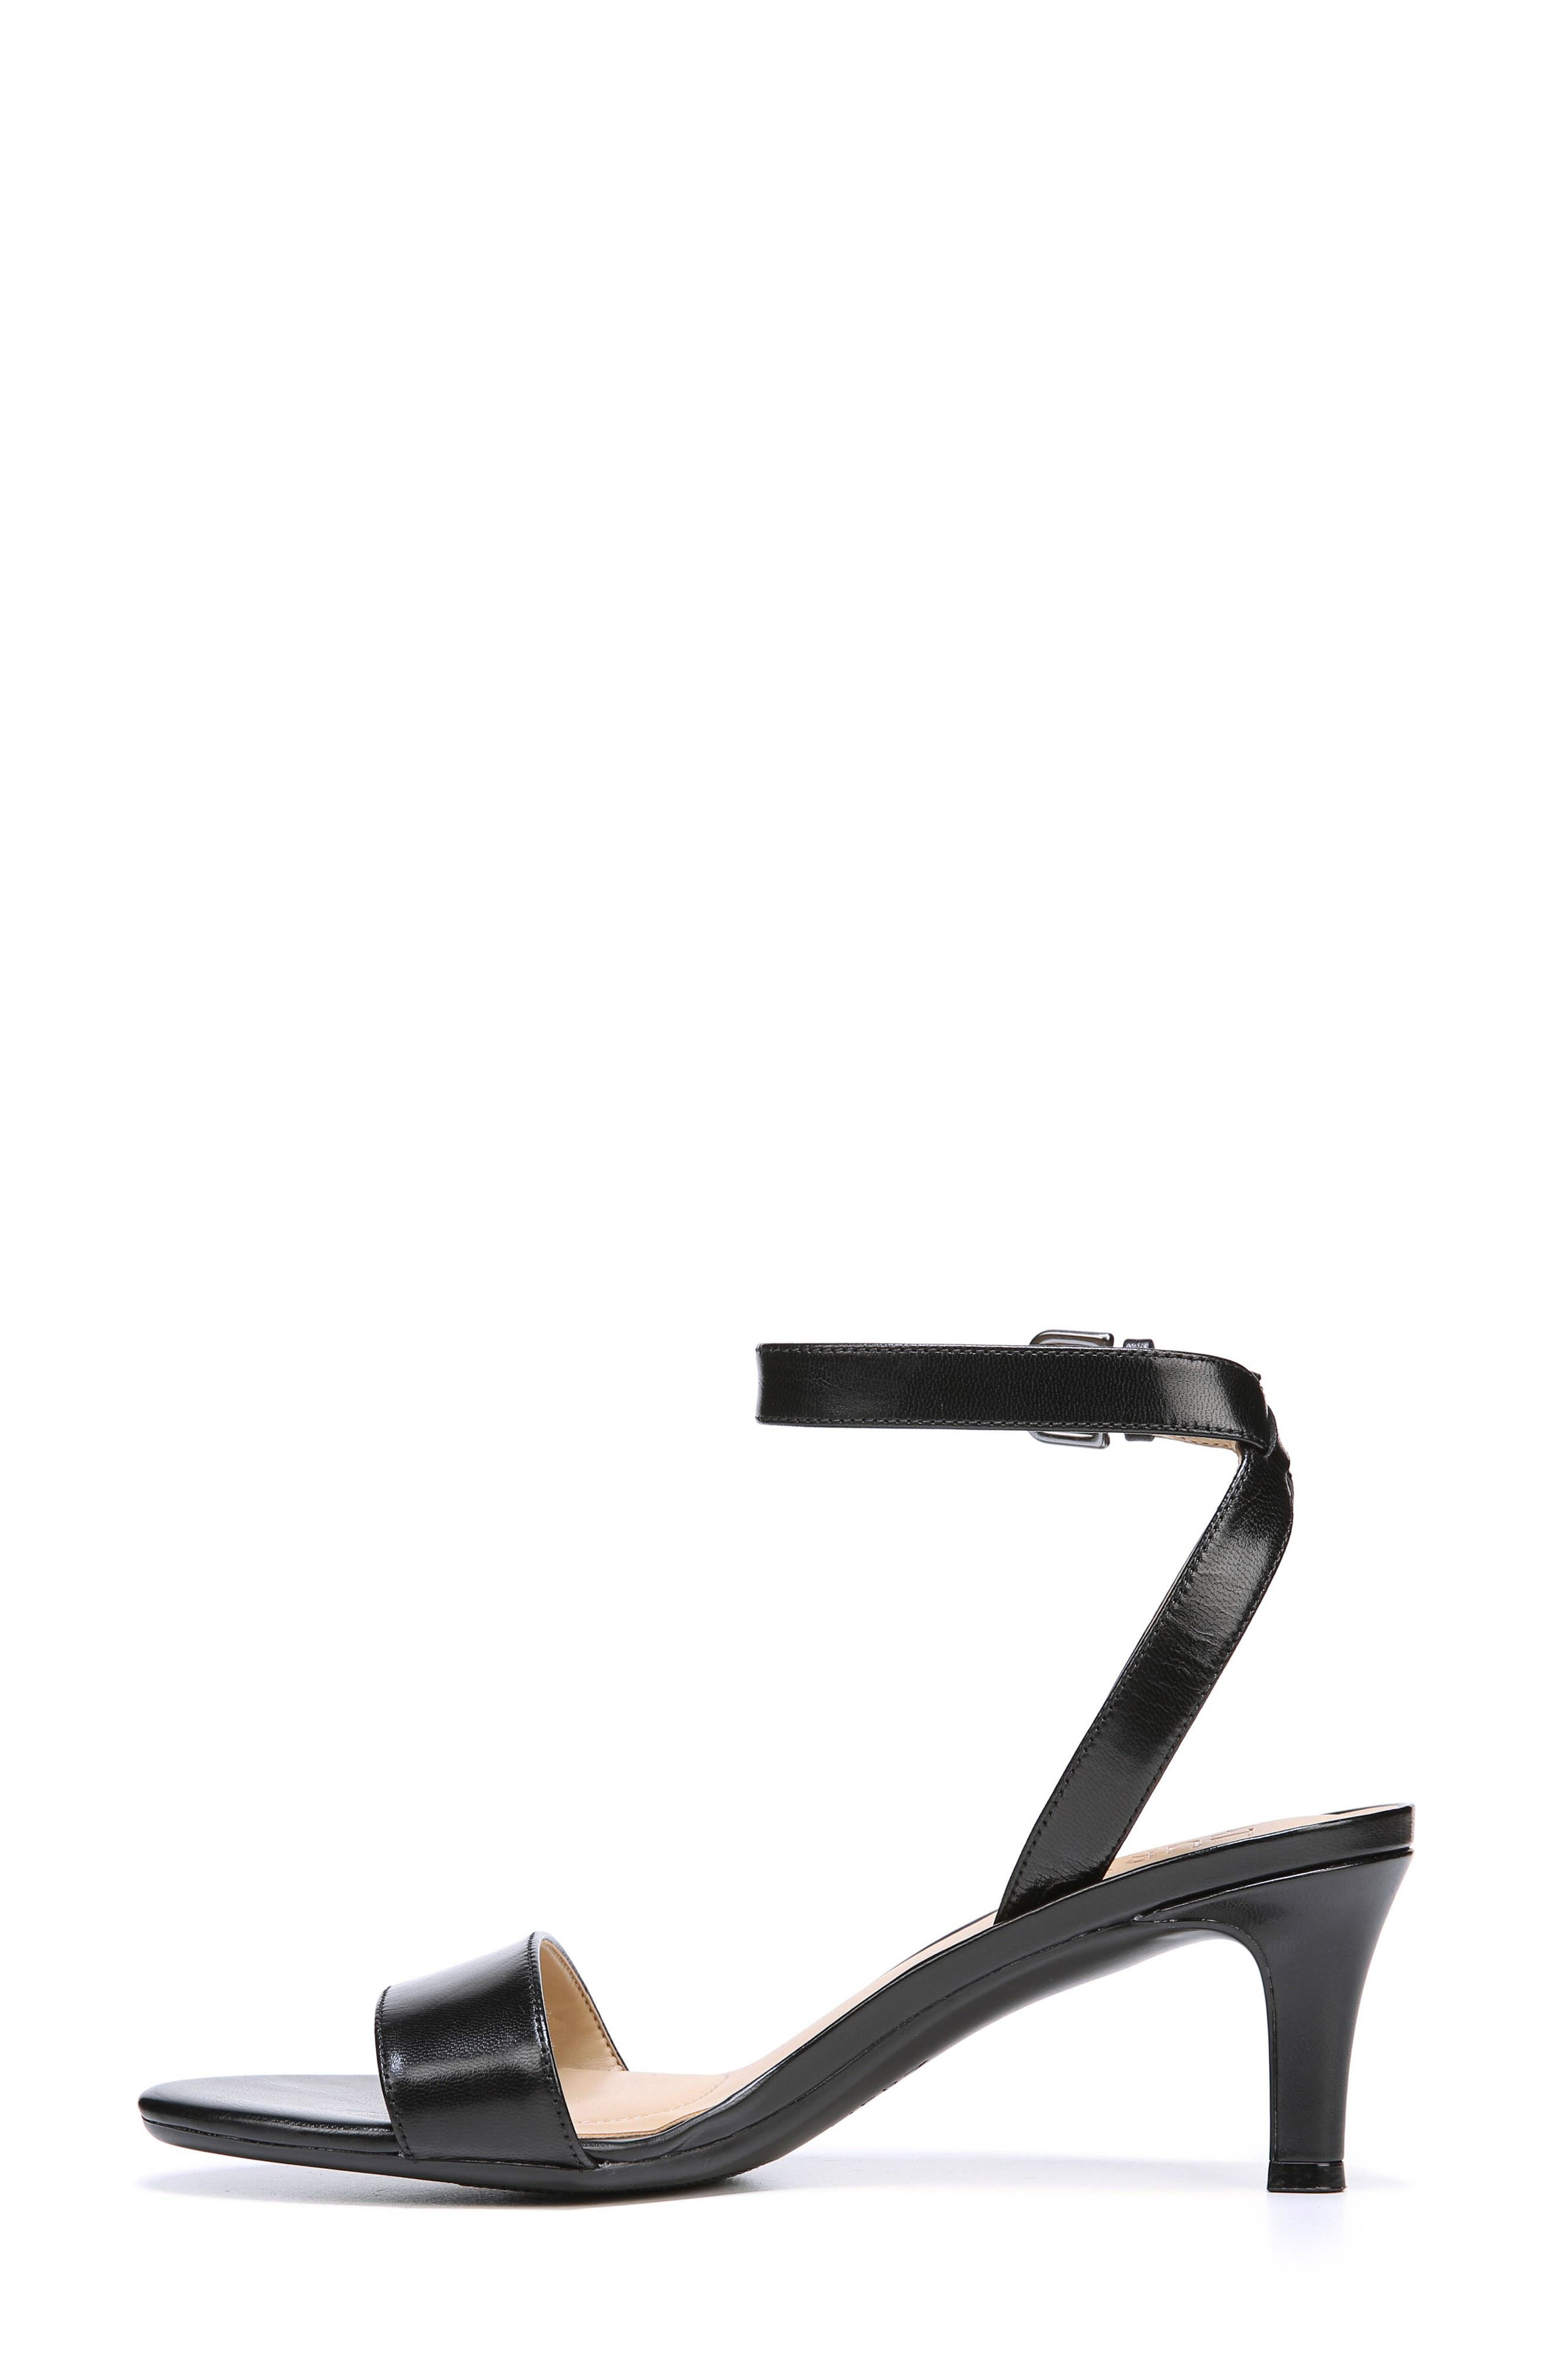 Tinda Sandal,                             Alternate thumbnail 3, color,                             BLACK LEATHER